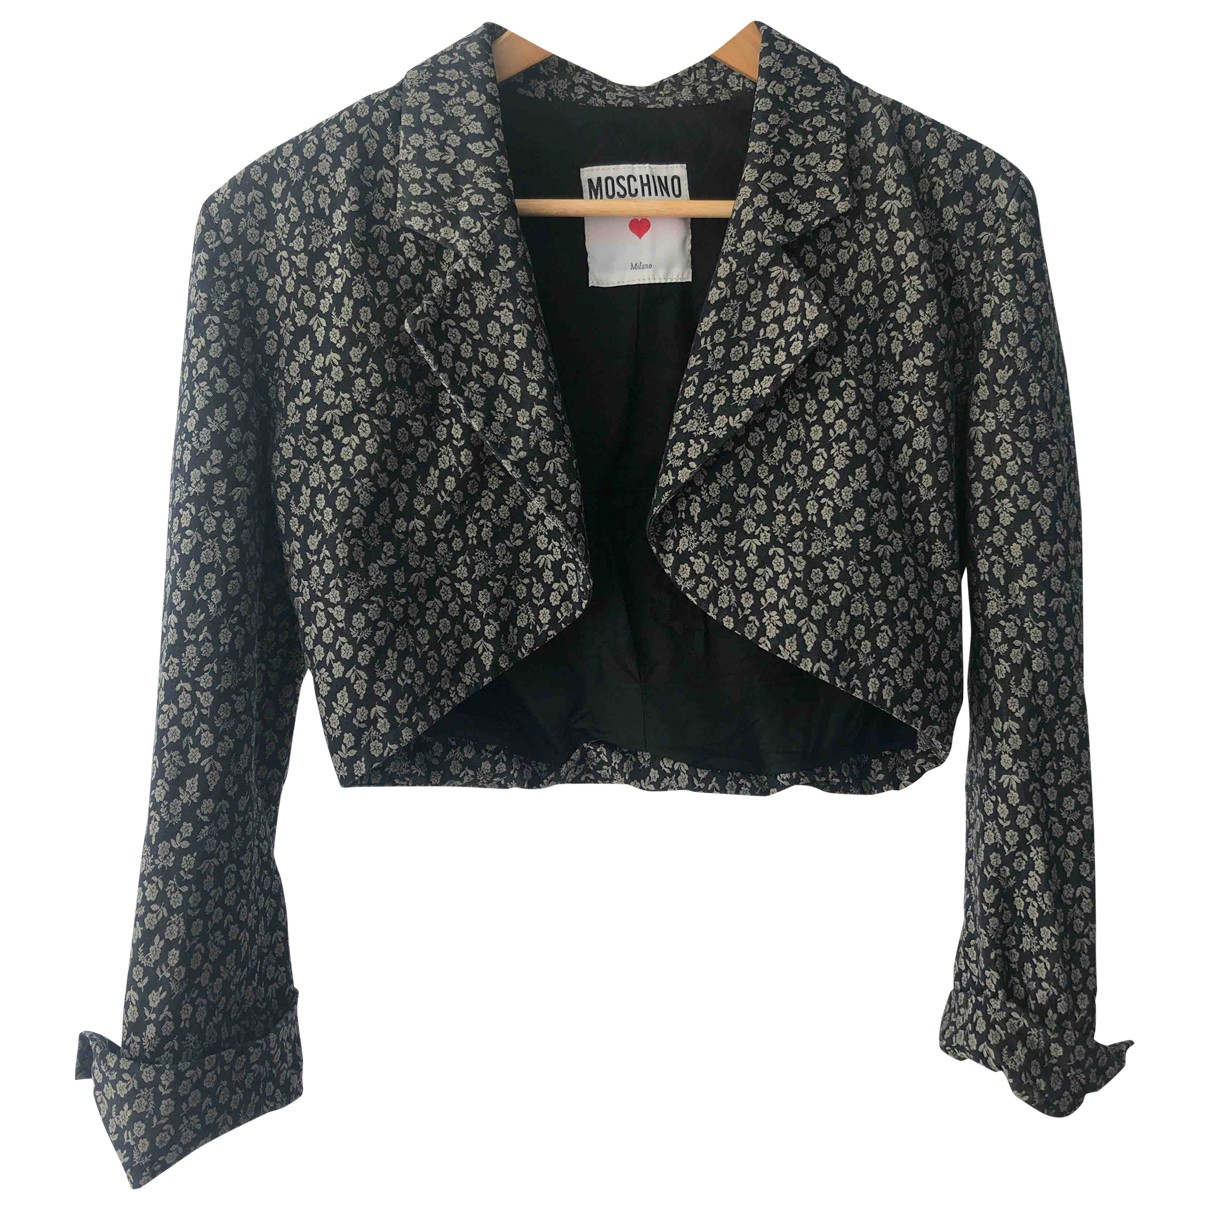 Moschino \N Black Cotton jacket for Women 36 FR